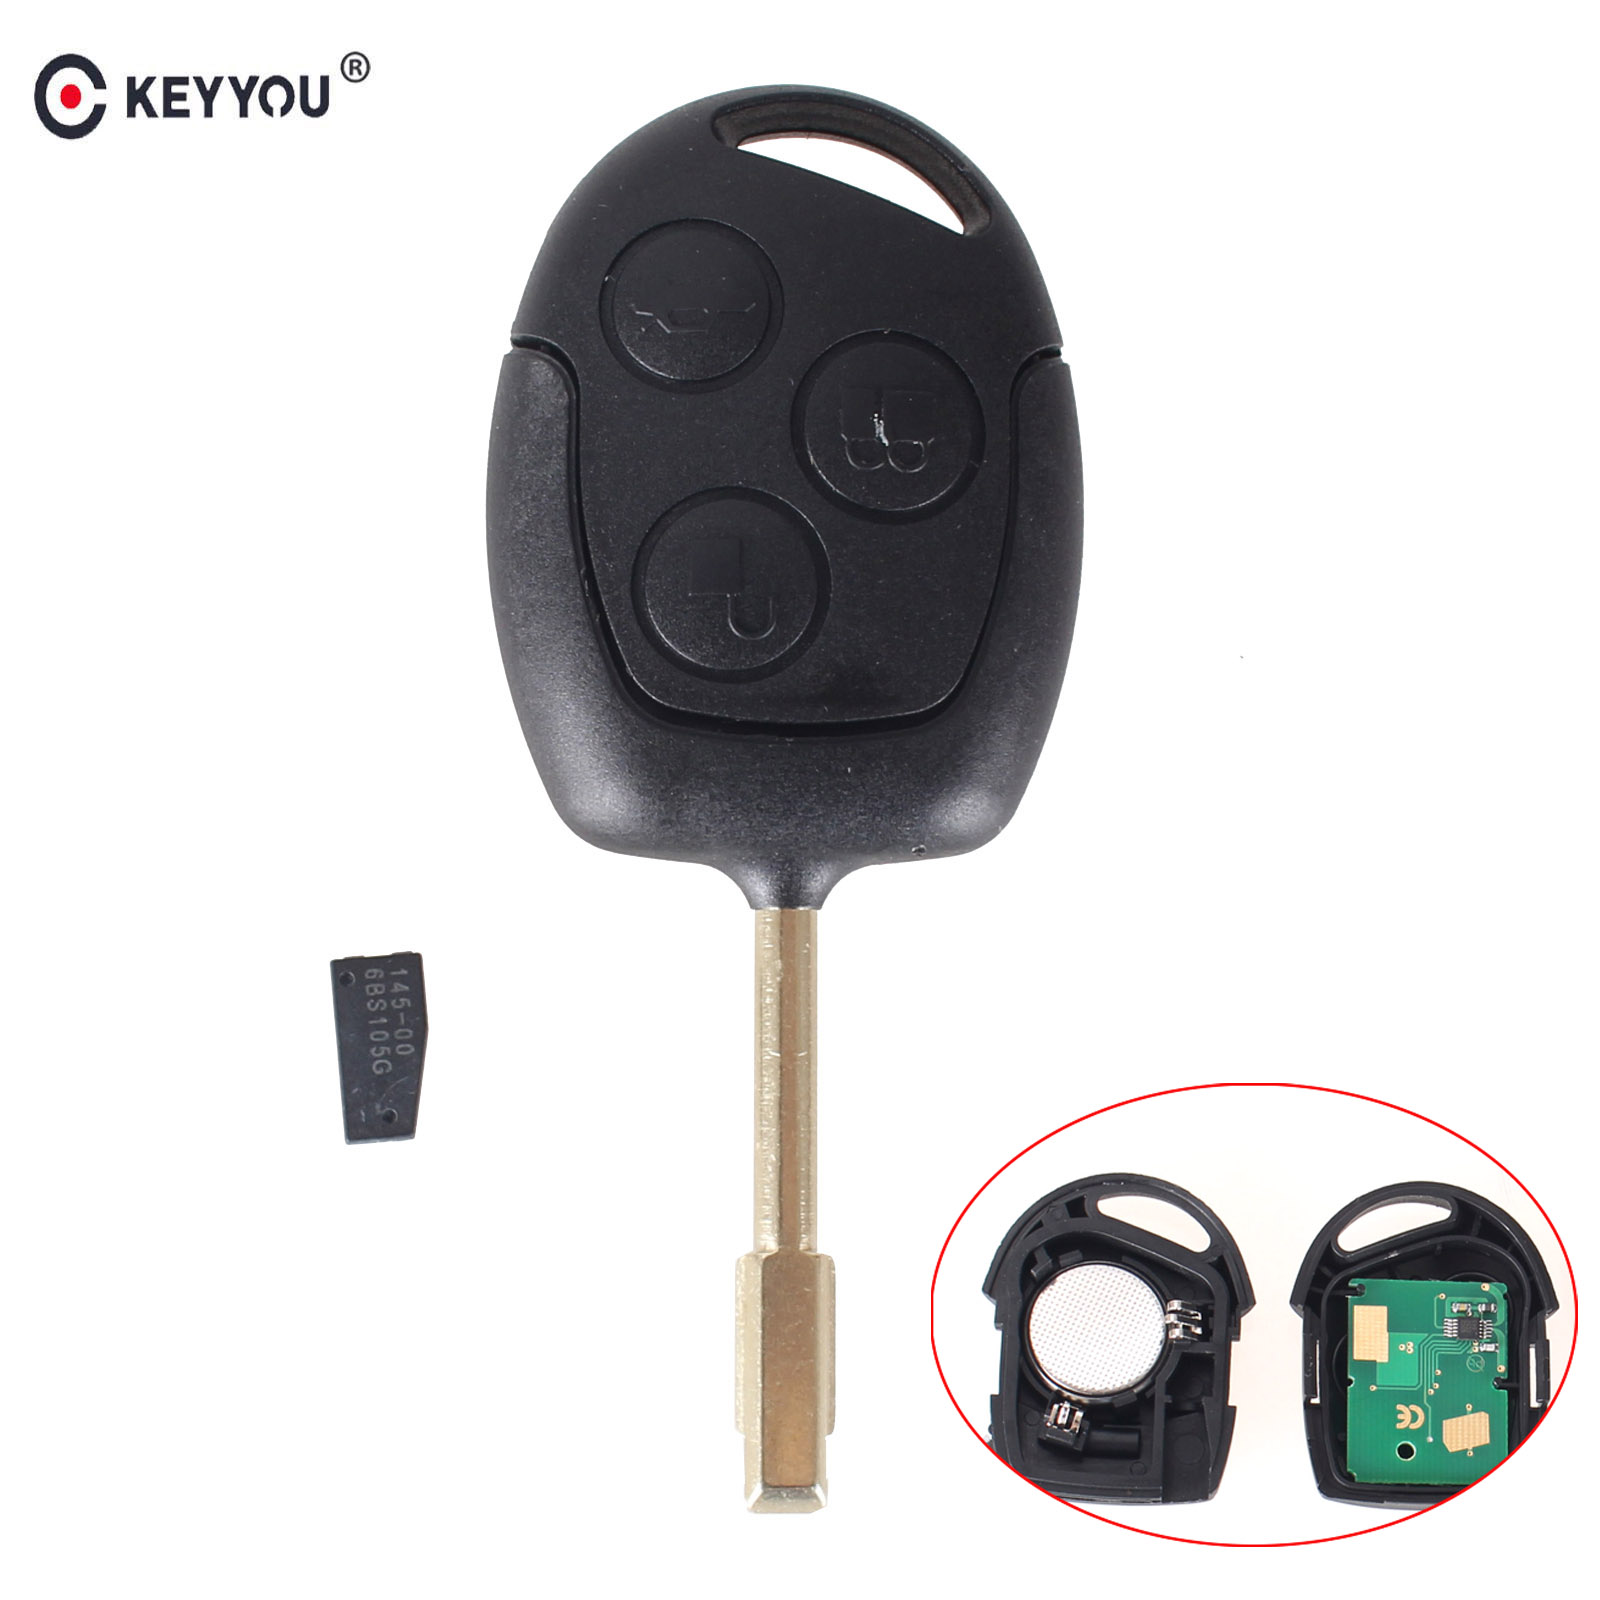 KEYYOU Remote Car Key 433MHz ID46 Chip for FORD Focus Fiesta Mondeo Fusion Transit KA 2001 <font><b>2002</b></font> 2003 2004 2005 2006 2007 2008 image